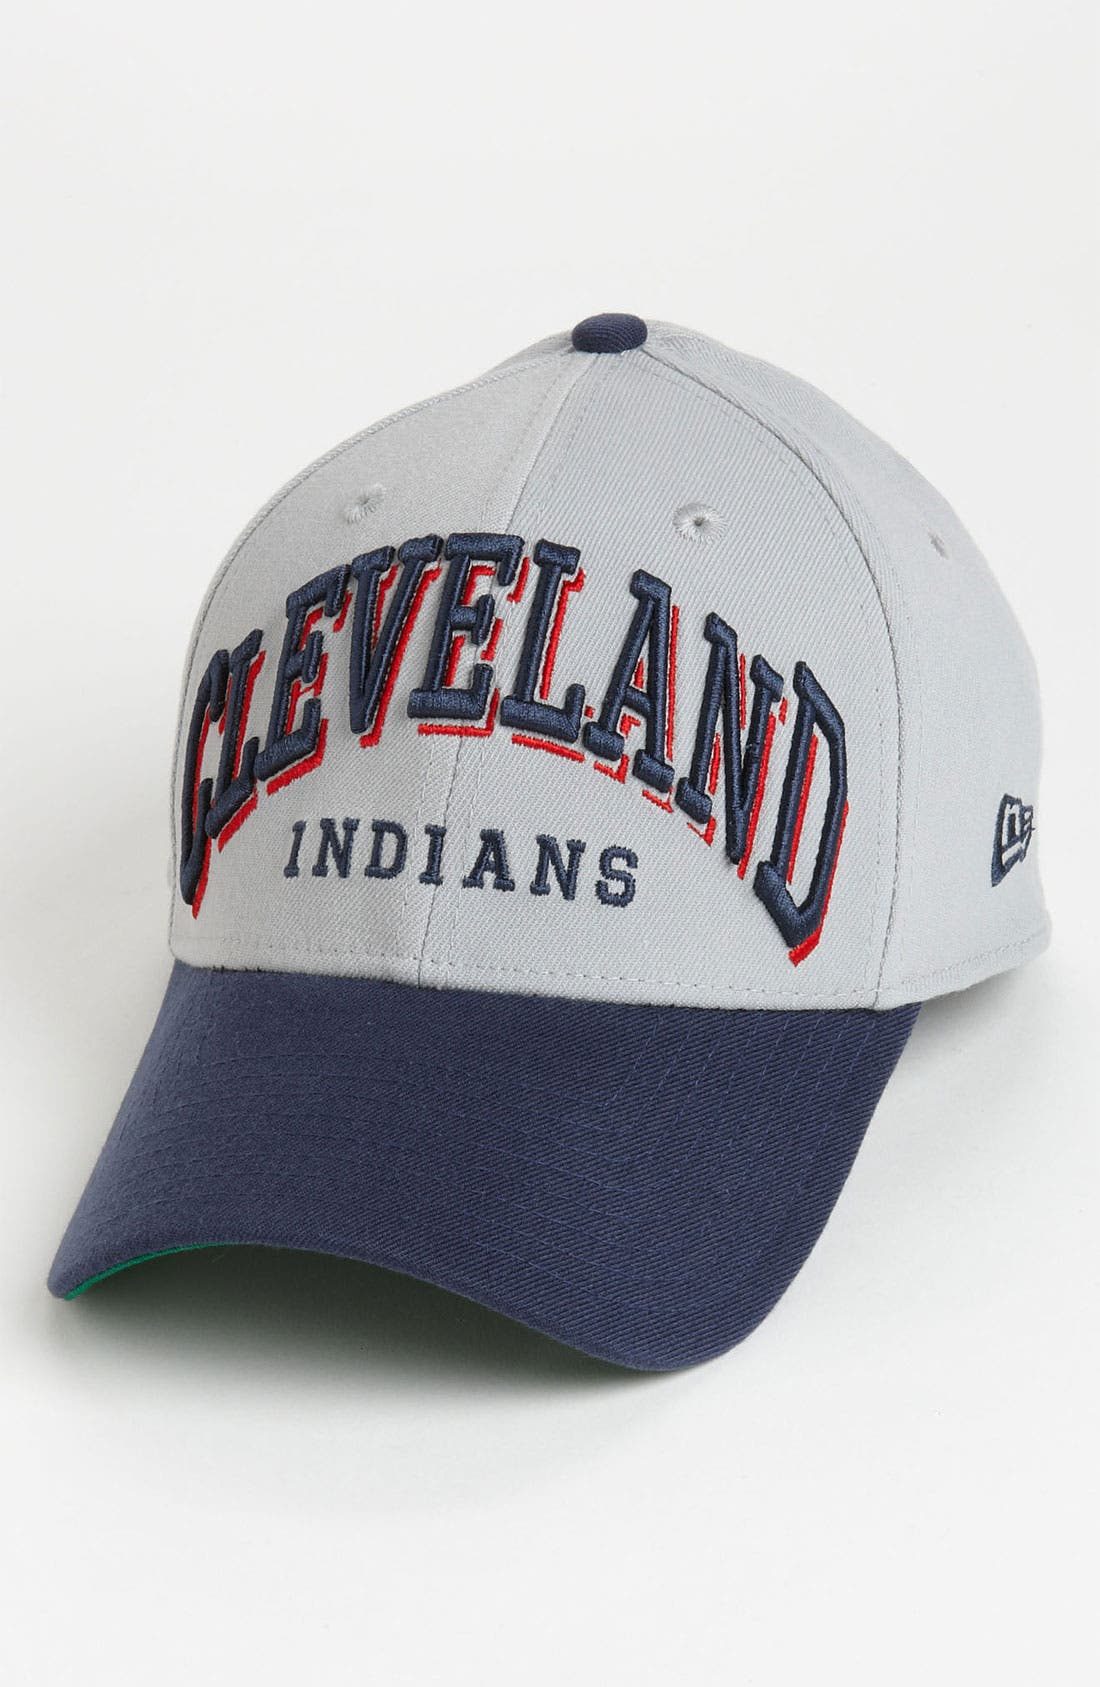 Main Image - New Era Cap 'Cleveland Indians - Arch Mark' Fitted Baseball Cap